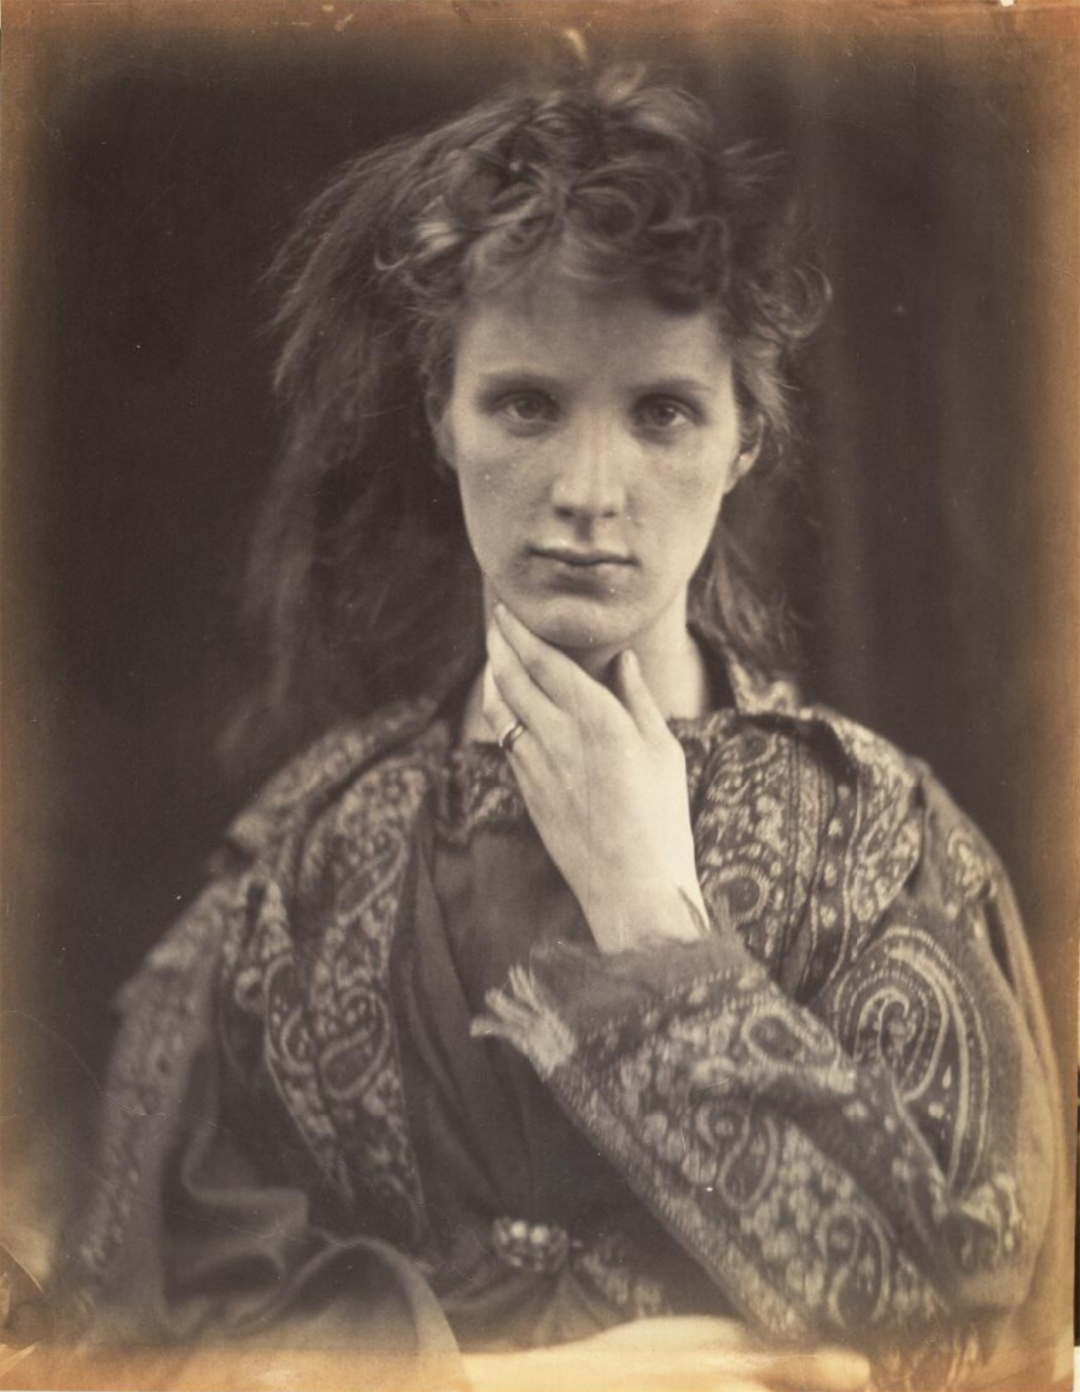 Early Portrait Photography 1864-67 (Julia Margaret Cameron)